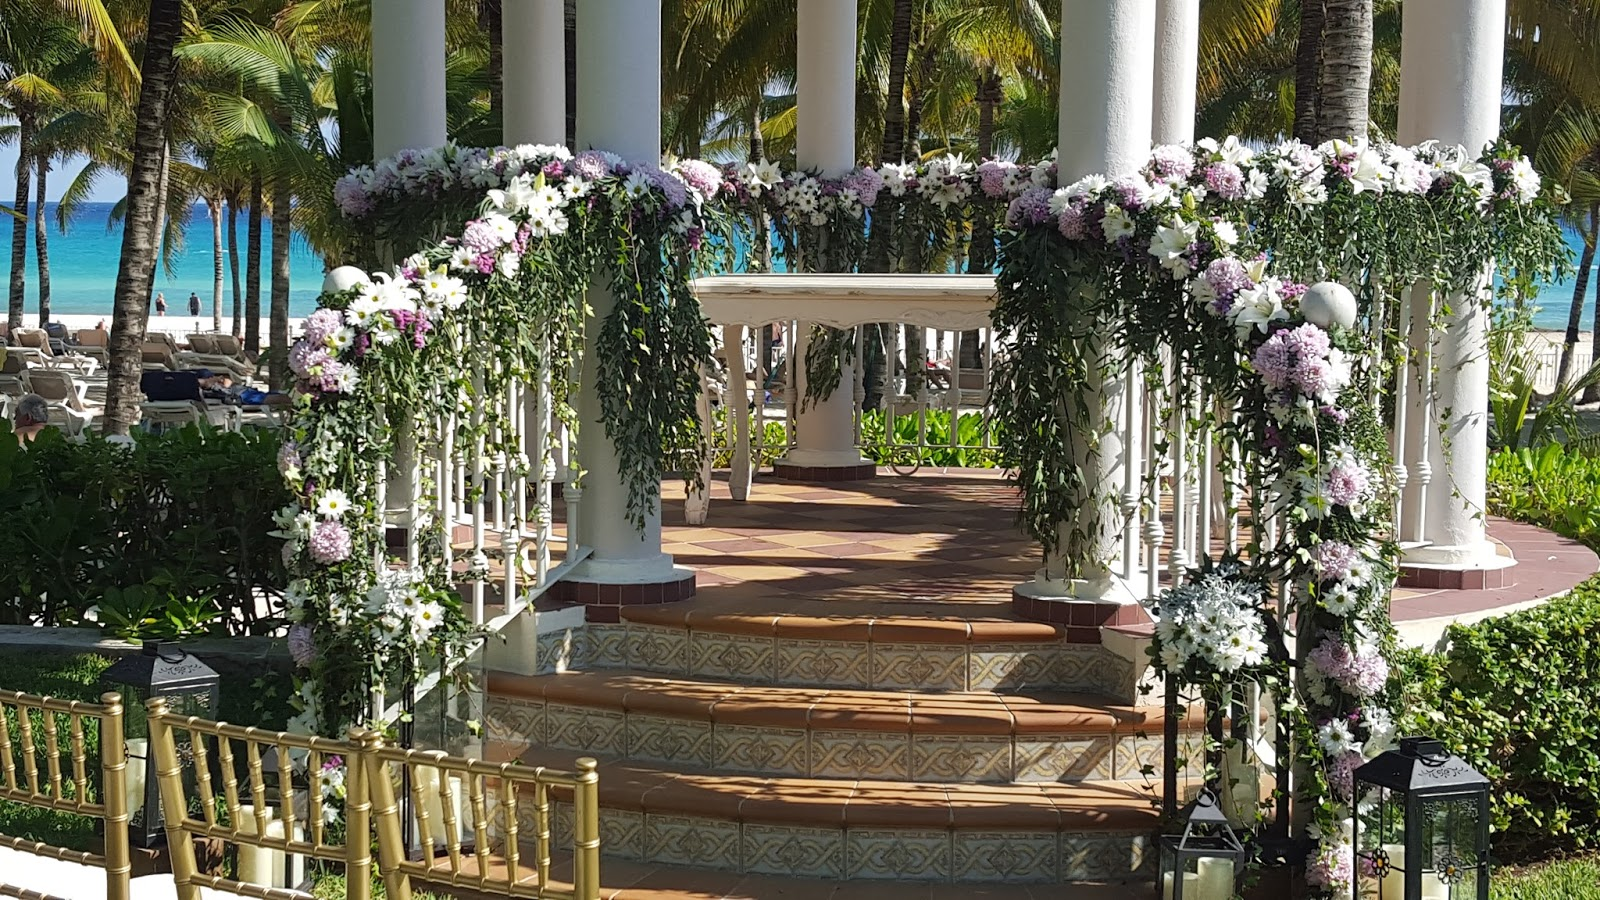 Ideas fant sticas de gazebos para tu boda en la playa for Piani gazebo con camino